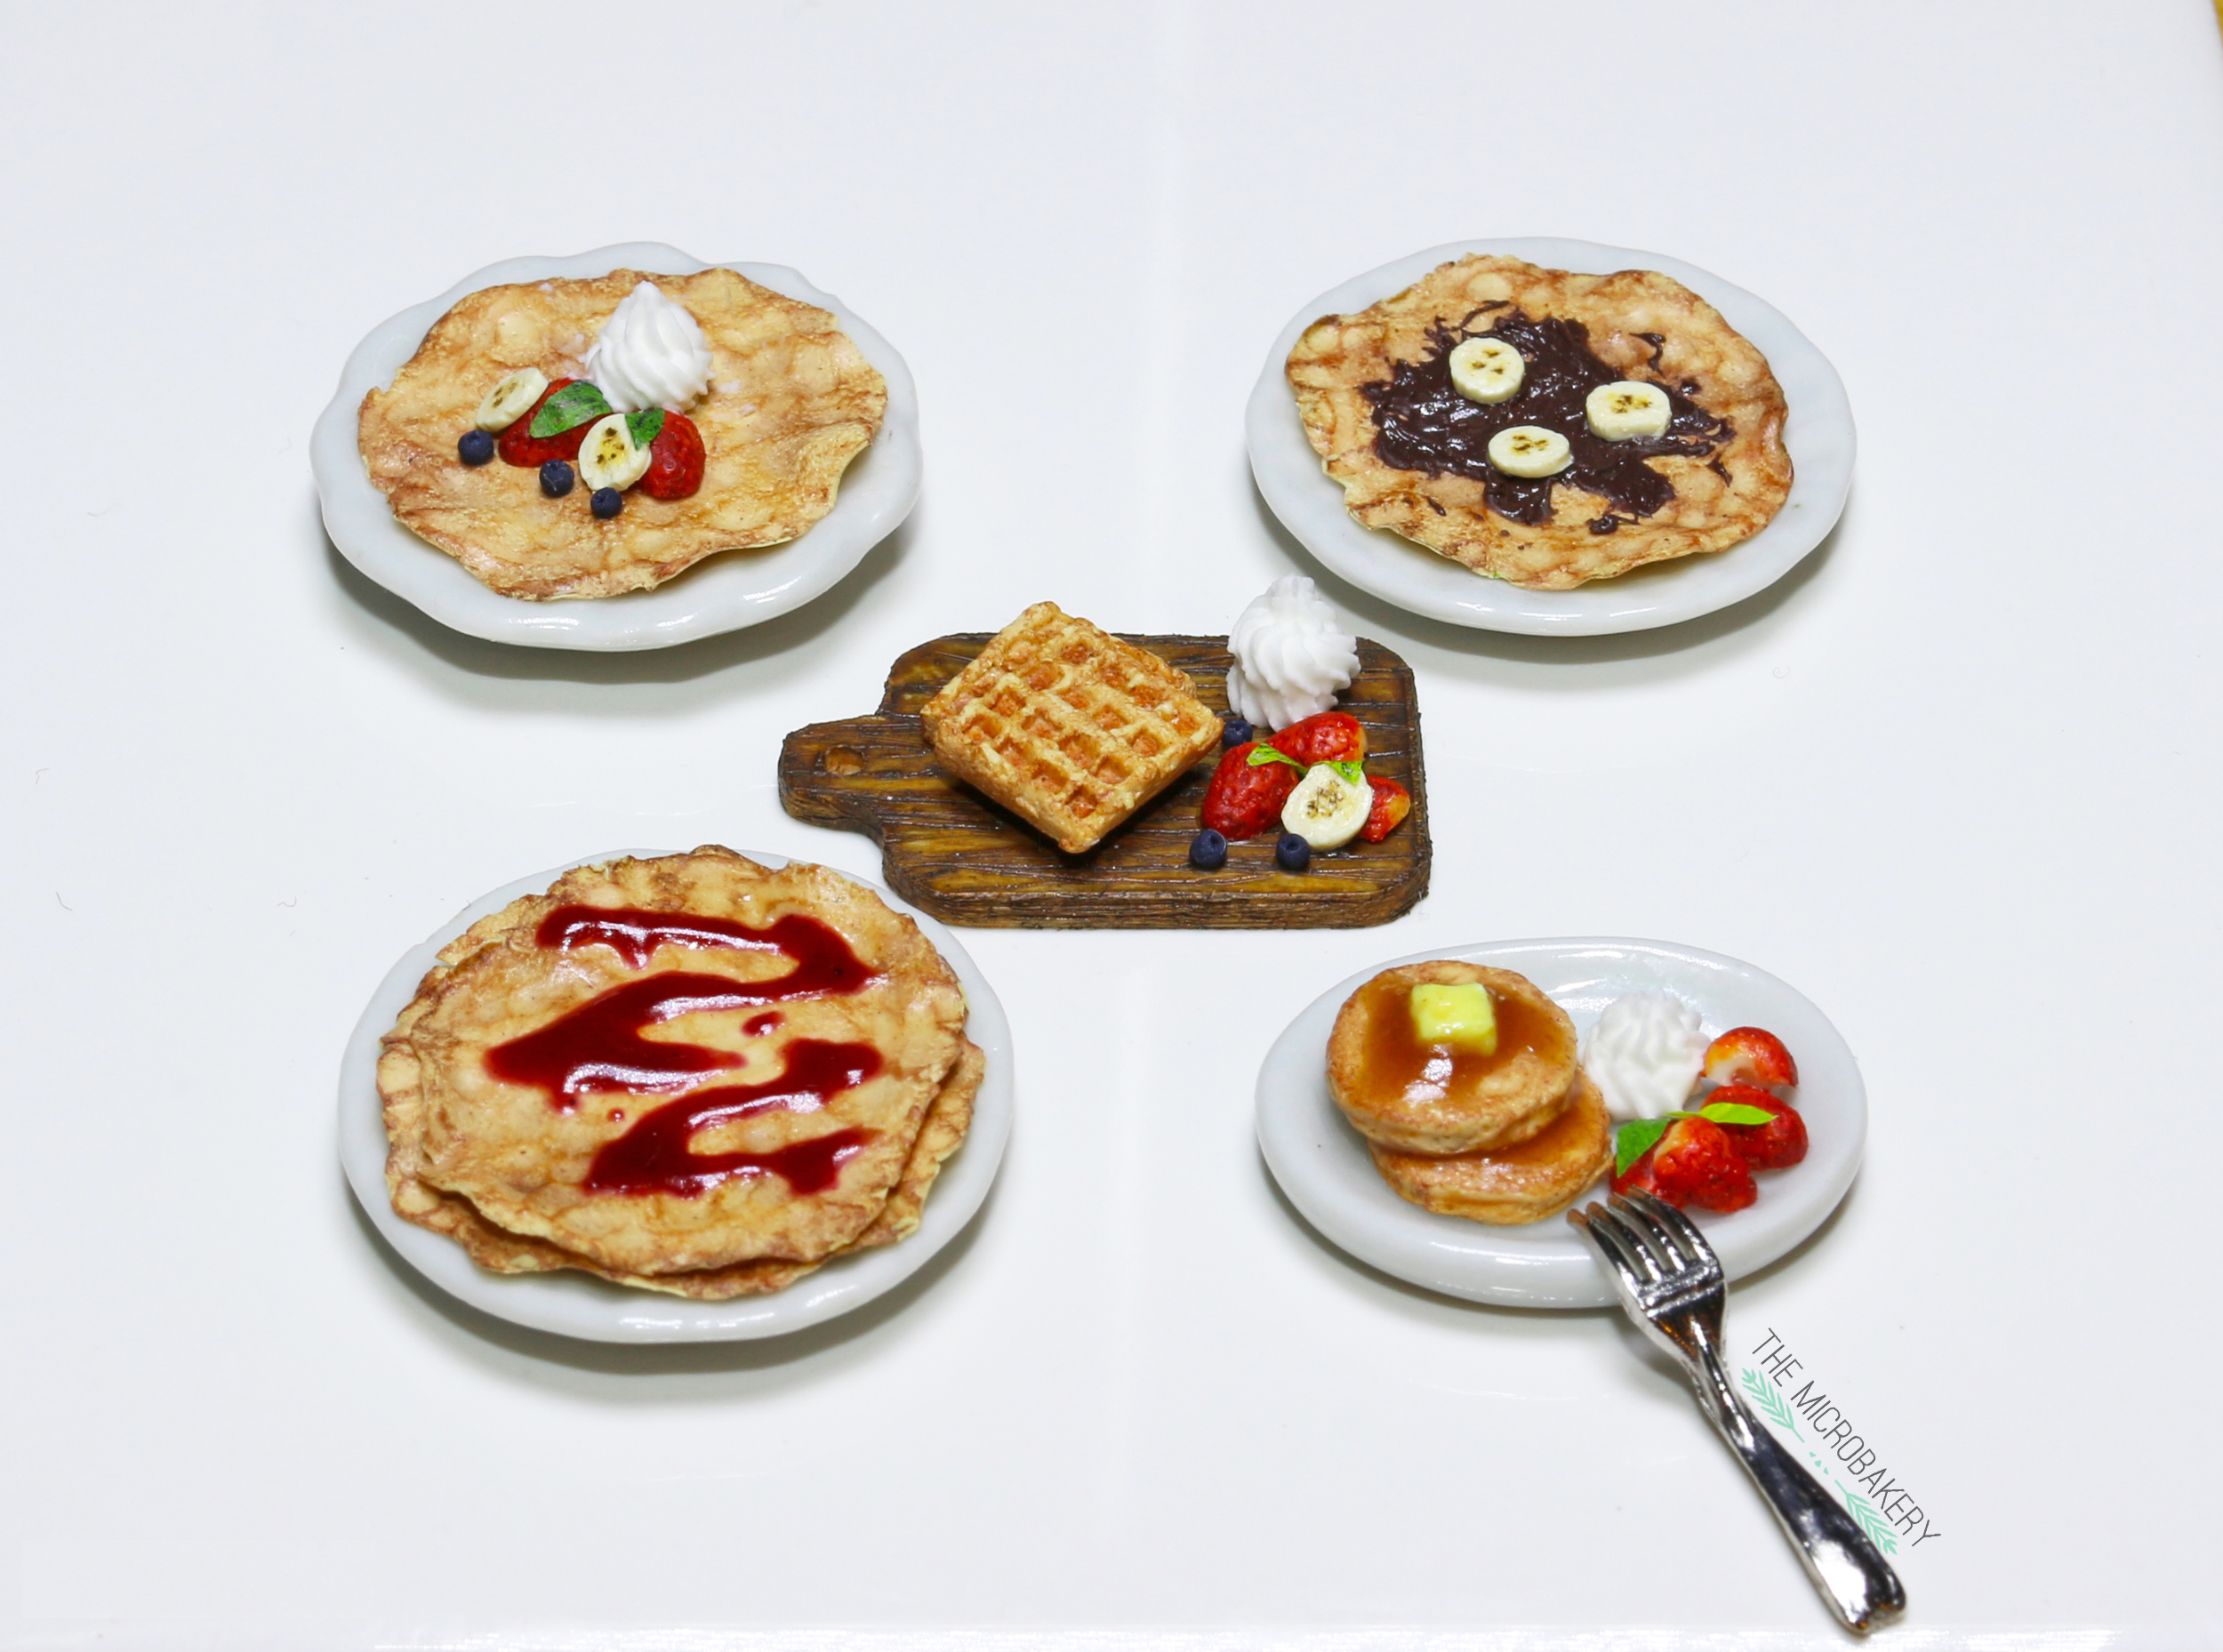 Crepes, Pancakes, and Waffles by The Microbakery 3